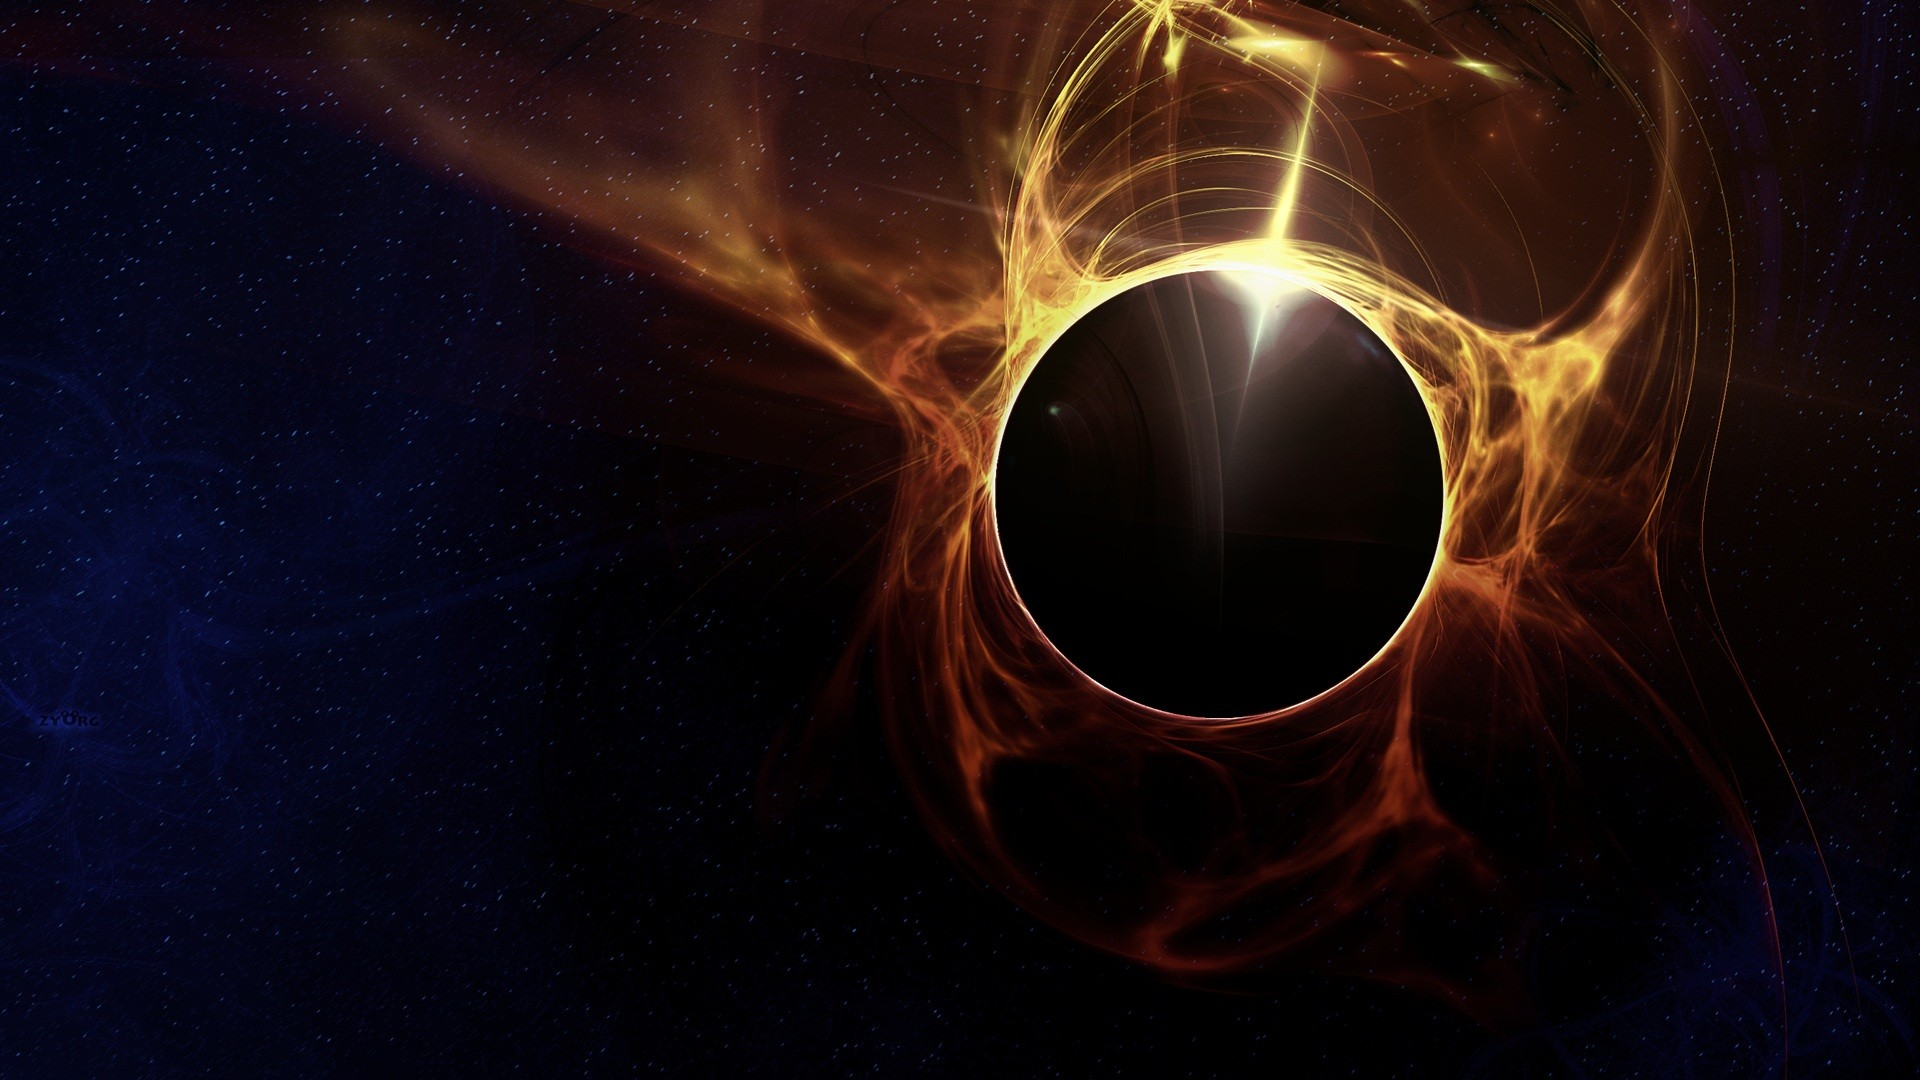 Ultra HD Eclipse Wallpapers 872R336   4USkY 1920x1080